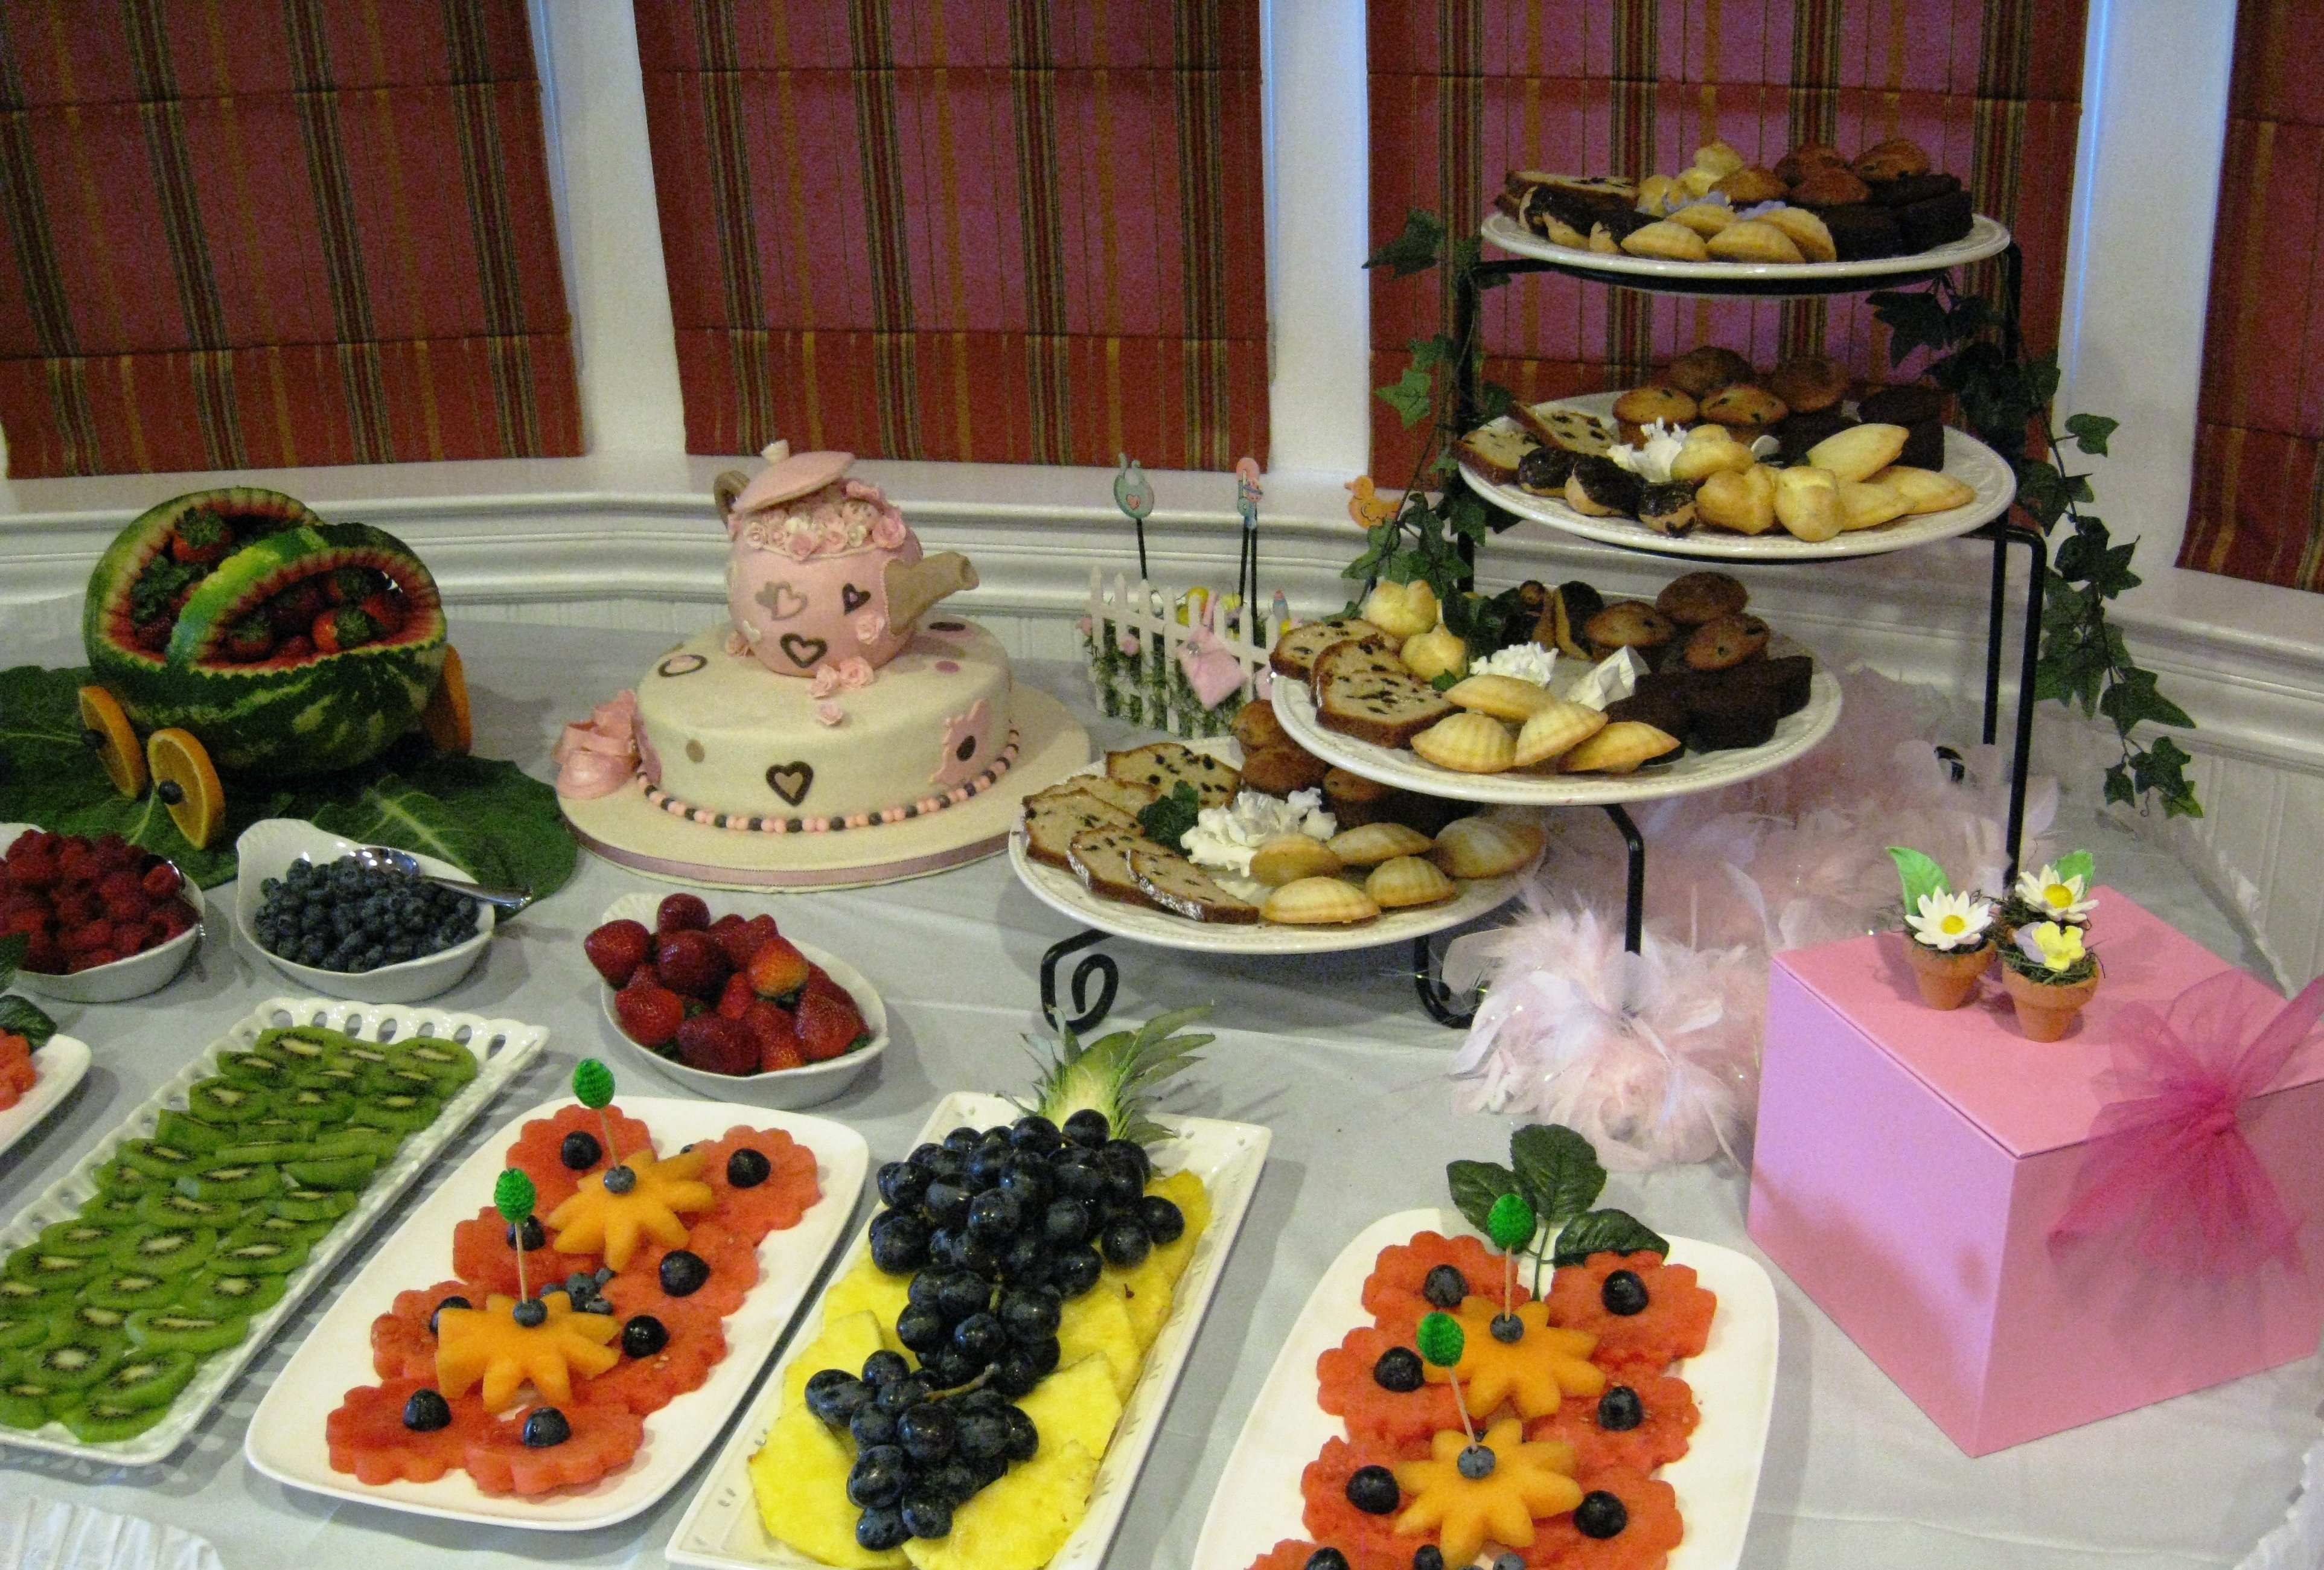 10 Best Jungle Baby Shower Food Ideas jungle theme baby shower food safari baby shower food ideas image 2021